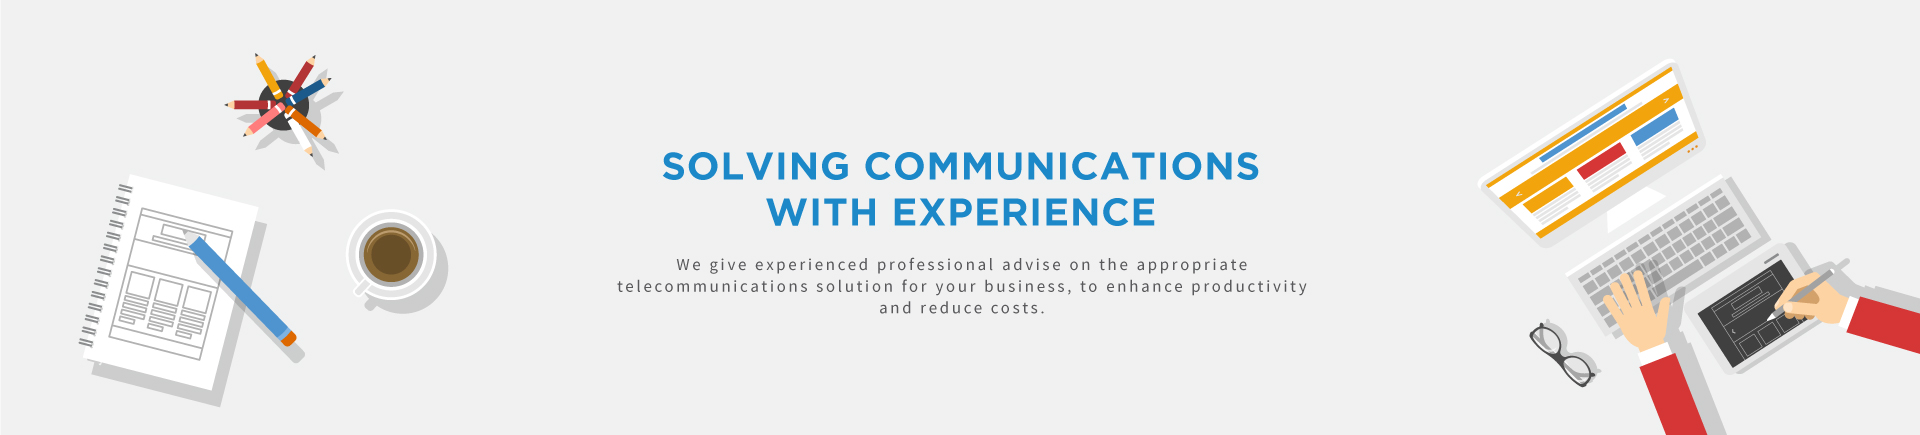 Solving communications with experience